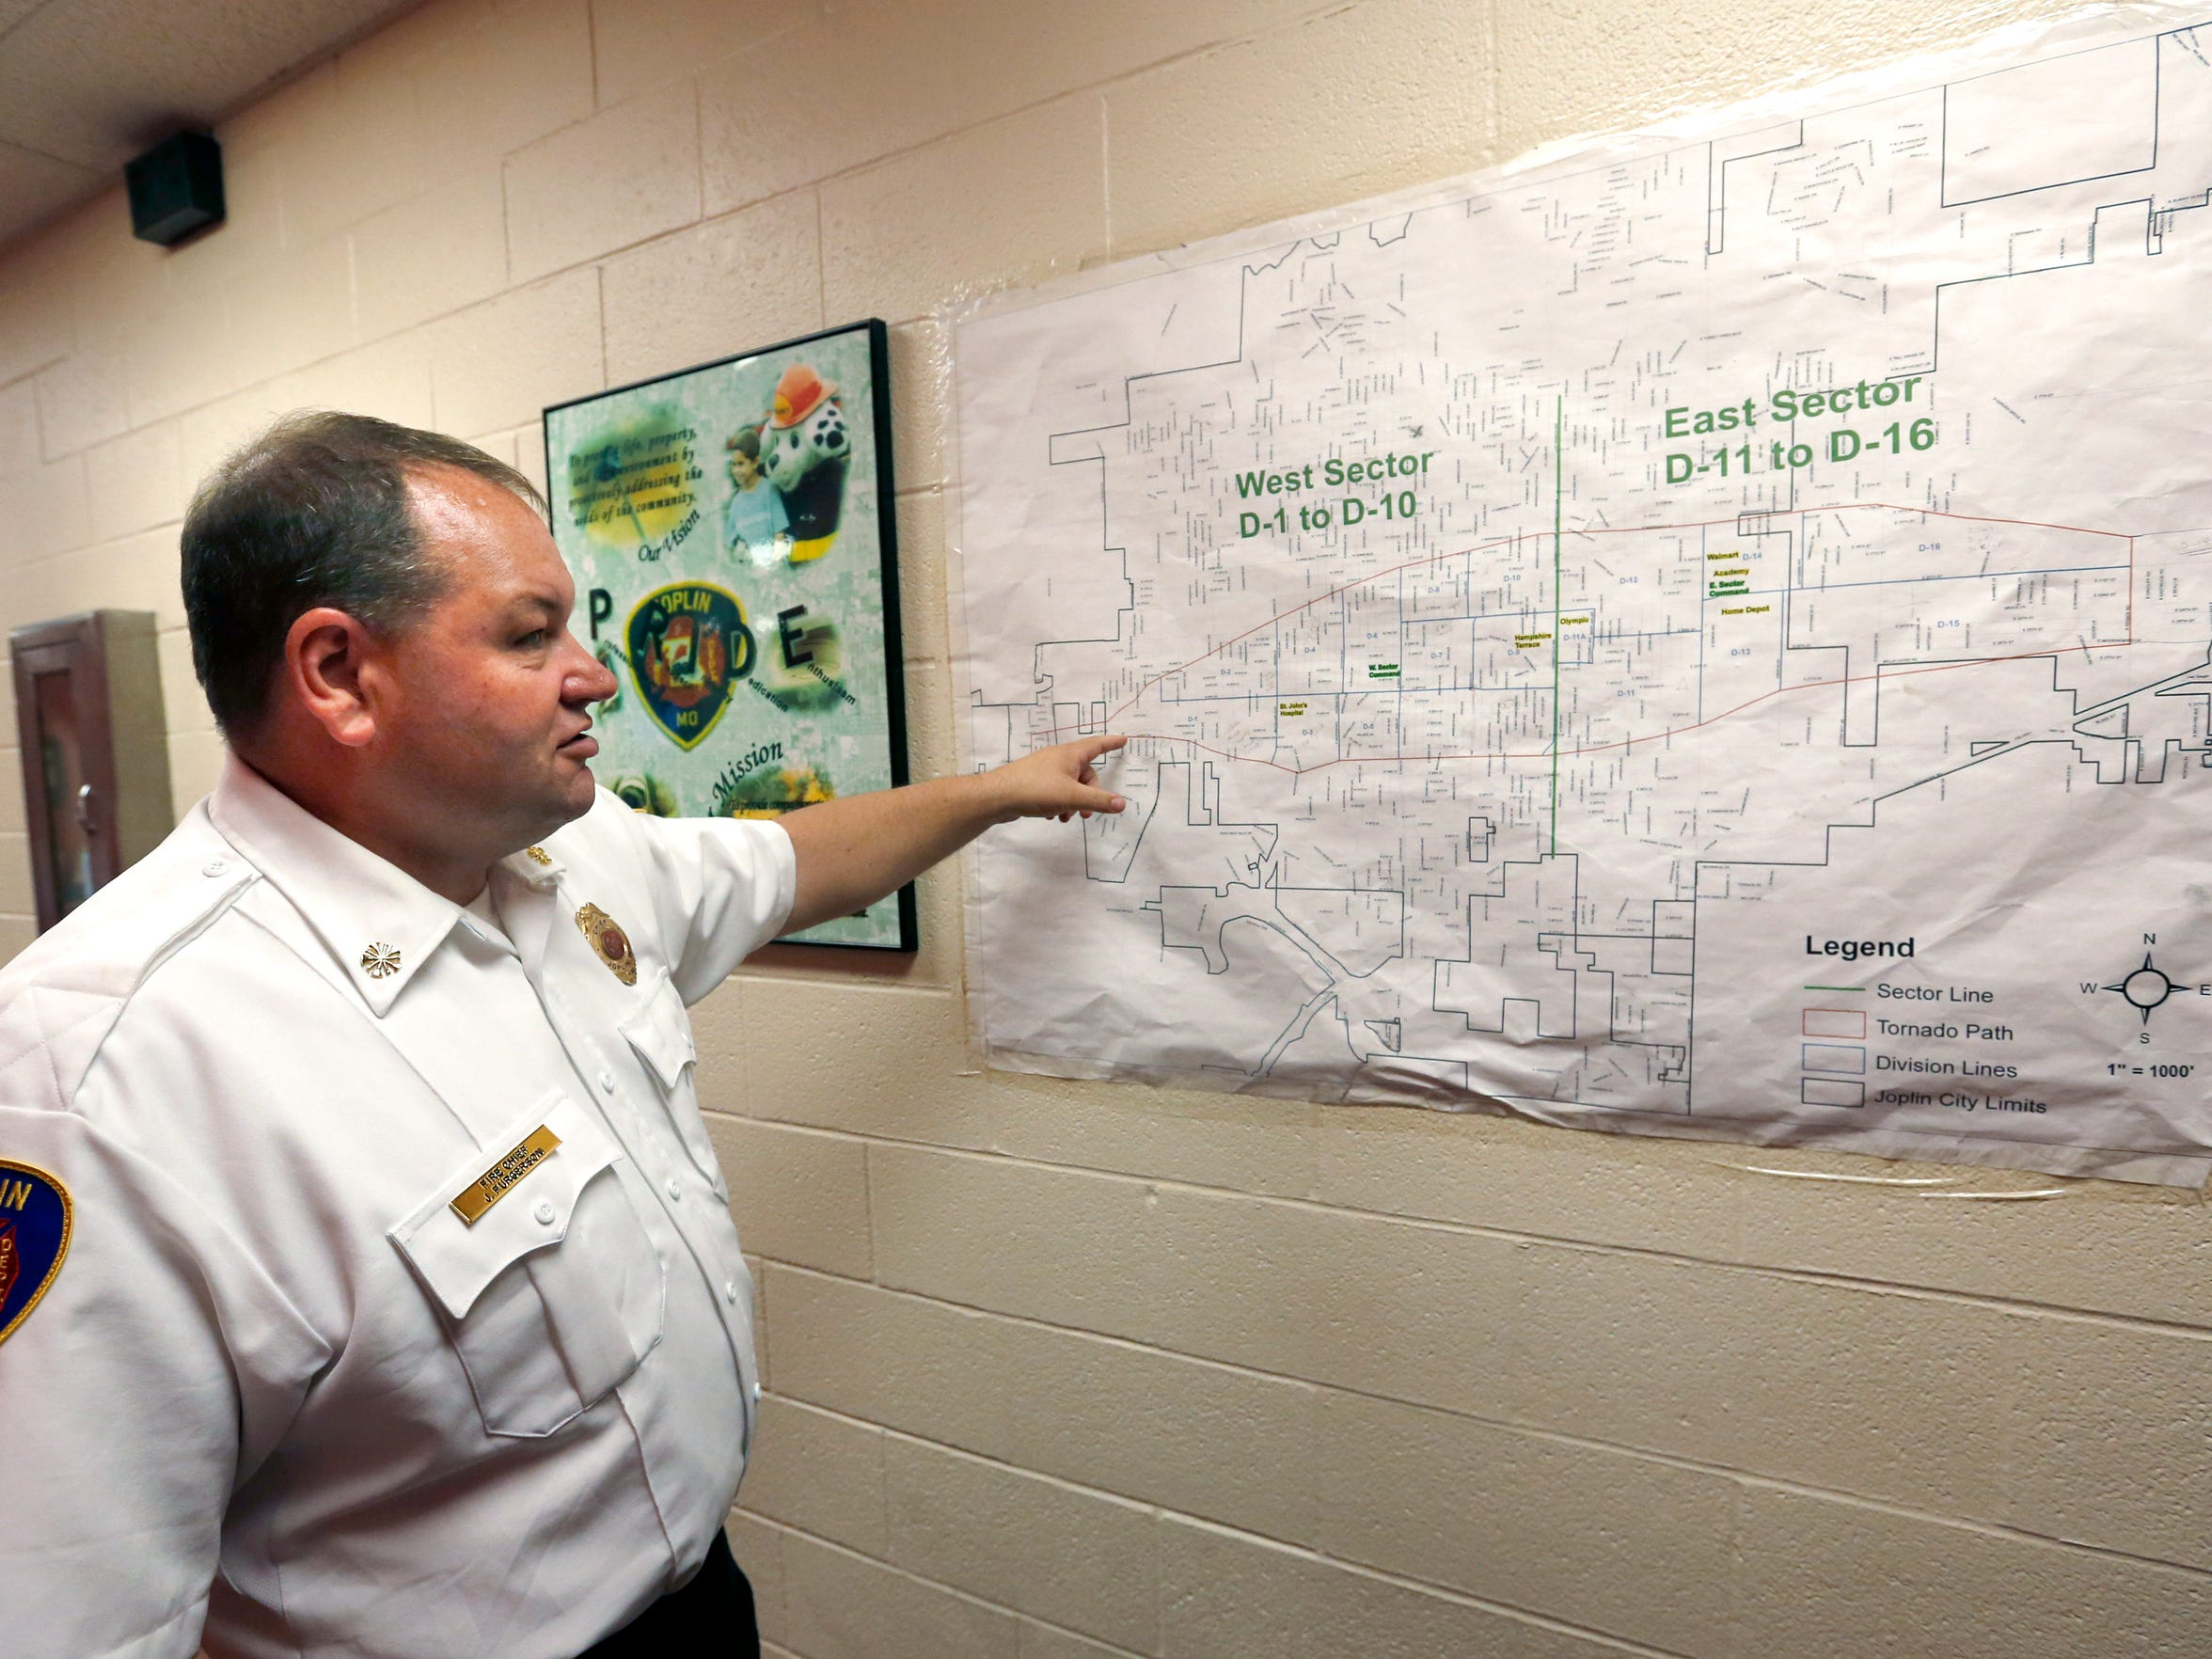 Joplin Fire Department Chief James Furgerson shows the path of the 2011 tornado on a map at a fire station on Friday, May 13, 2016. Furgerson was a Battalion Chief in the department when the tornado hit.